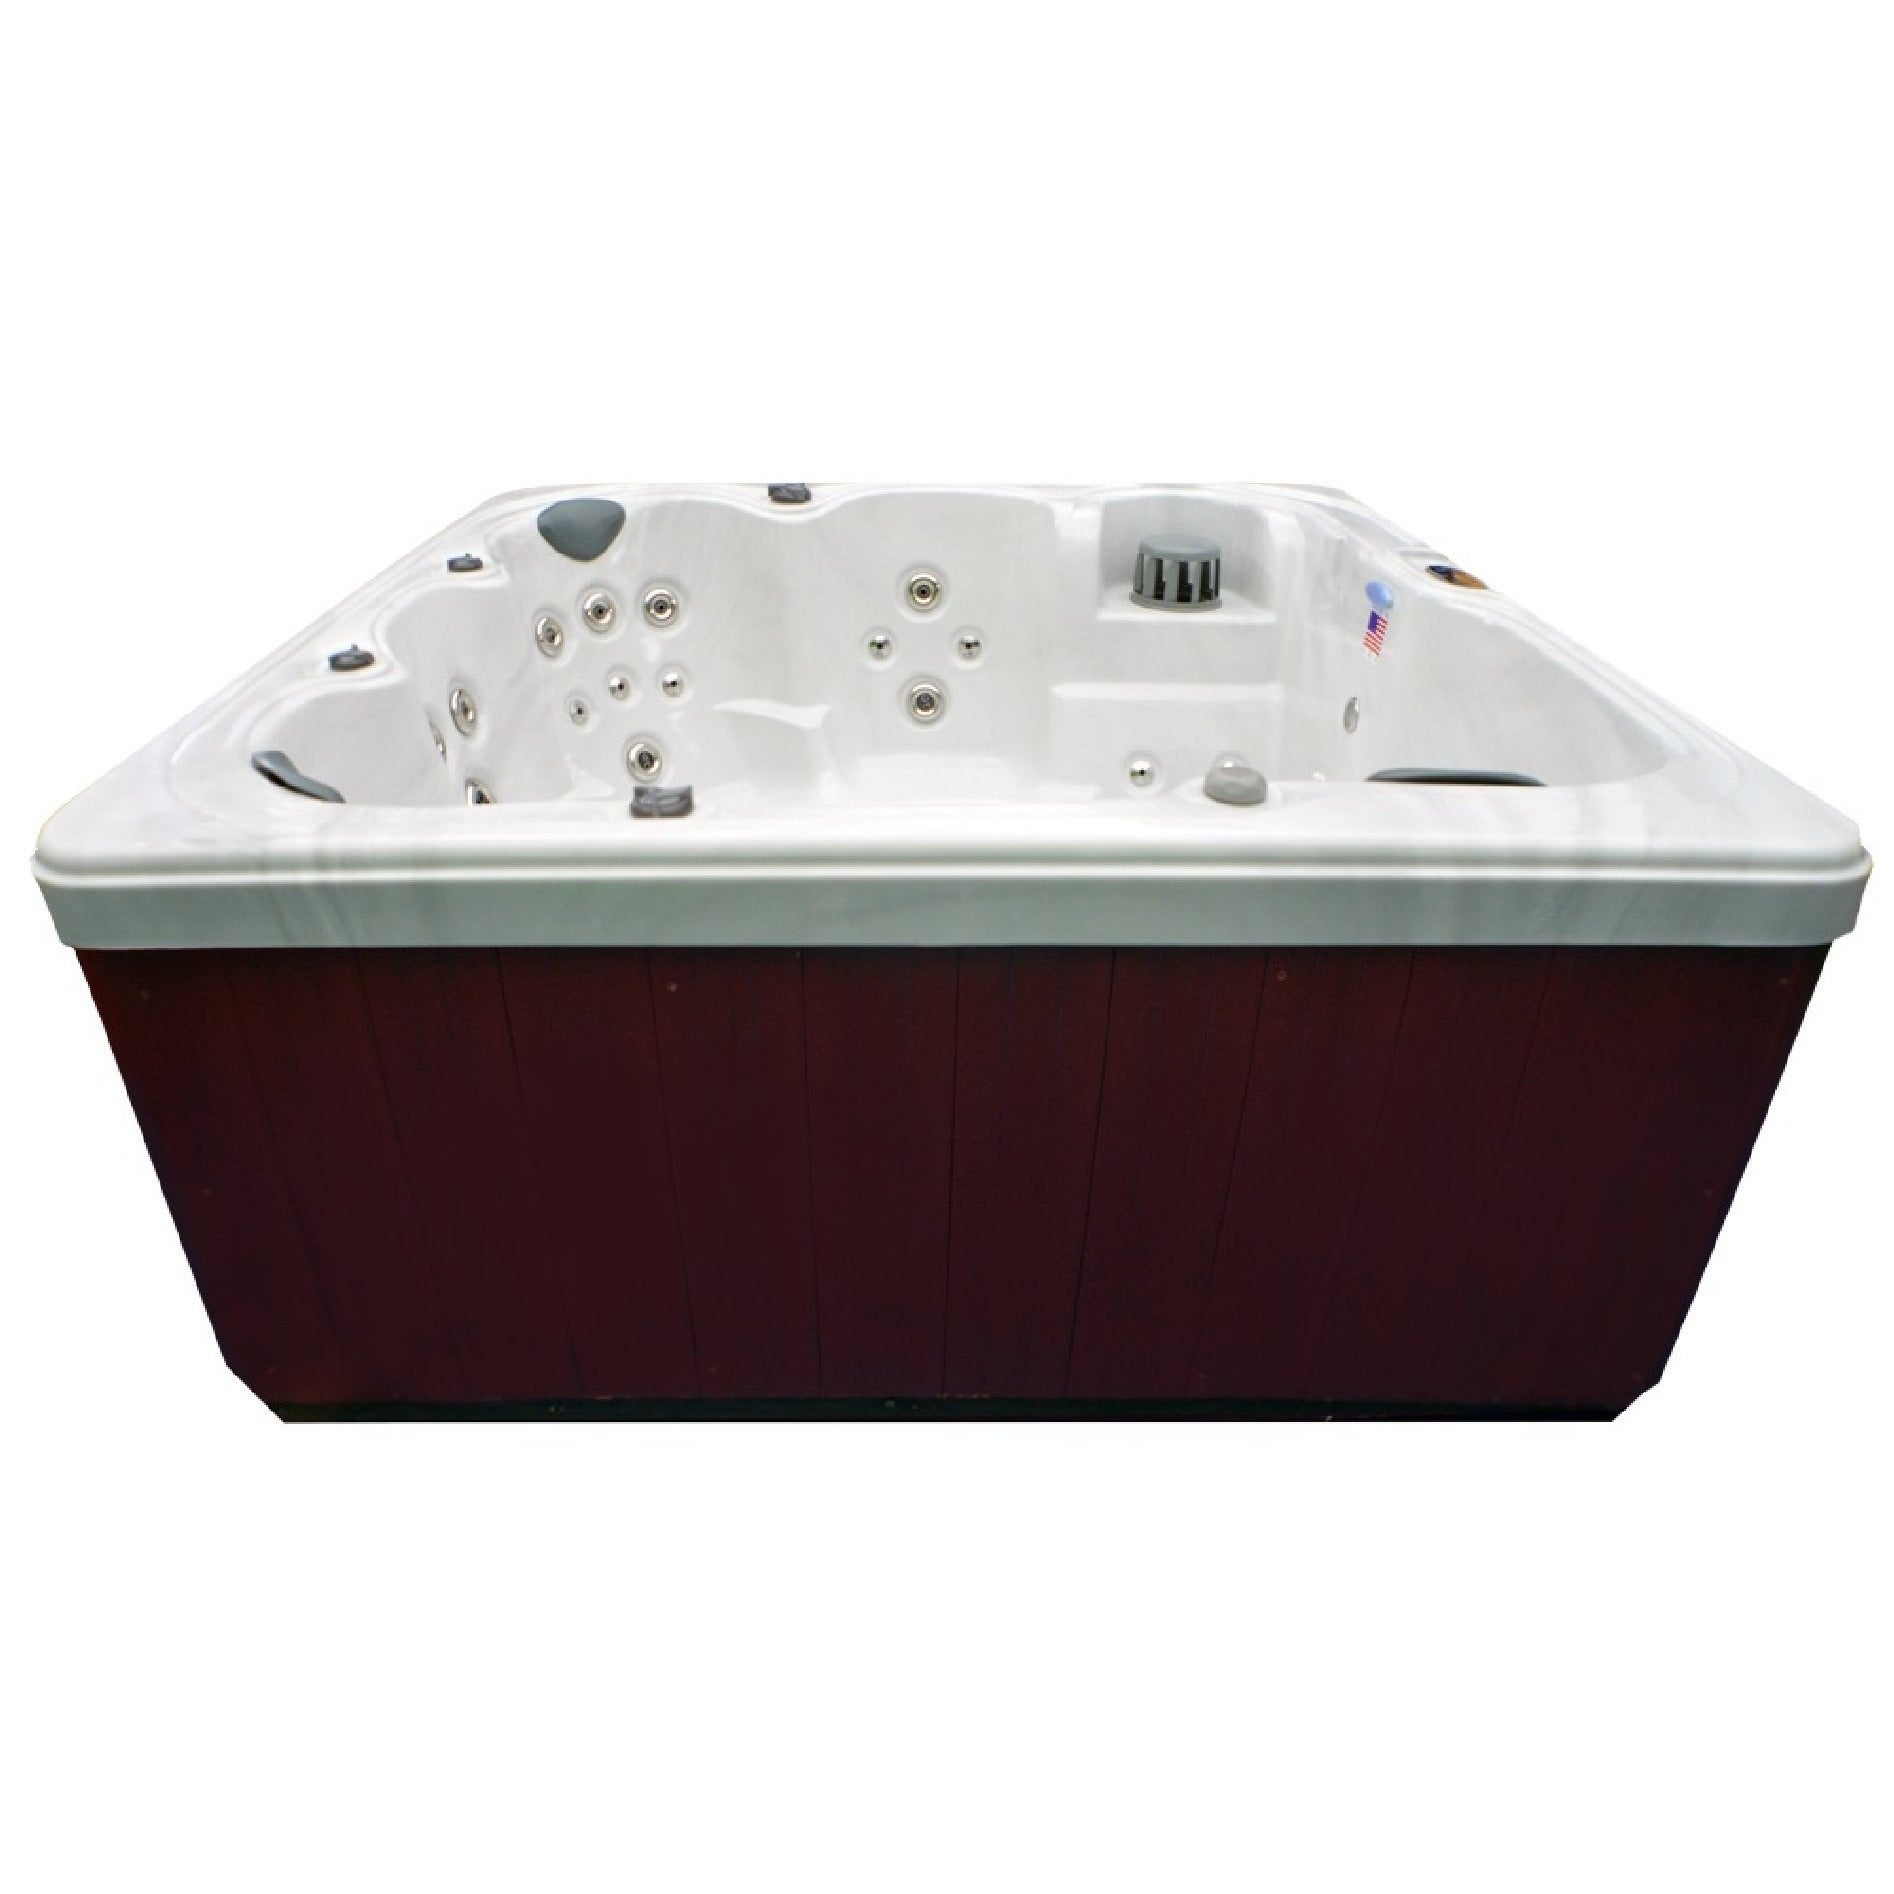 Home and Garden 6-person 71-jet Spa with Stainless Jets and Ozone ...